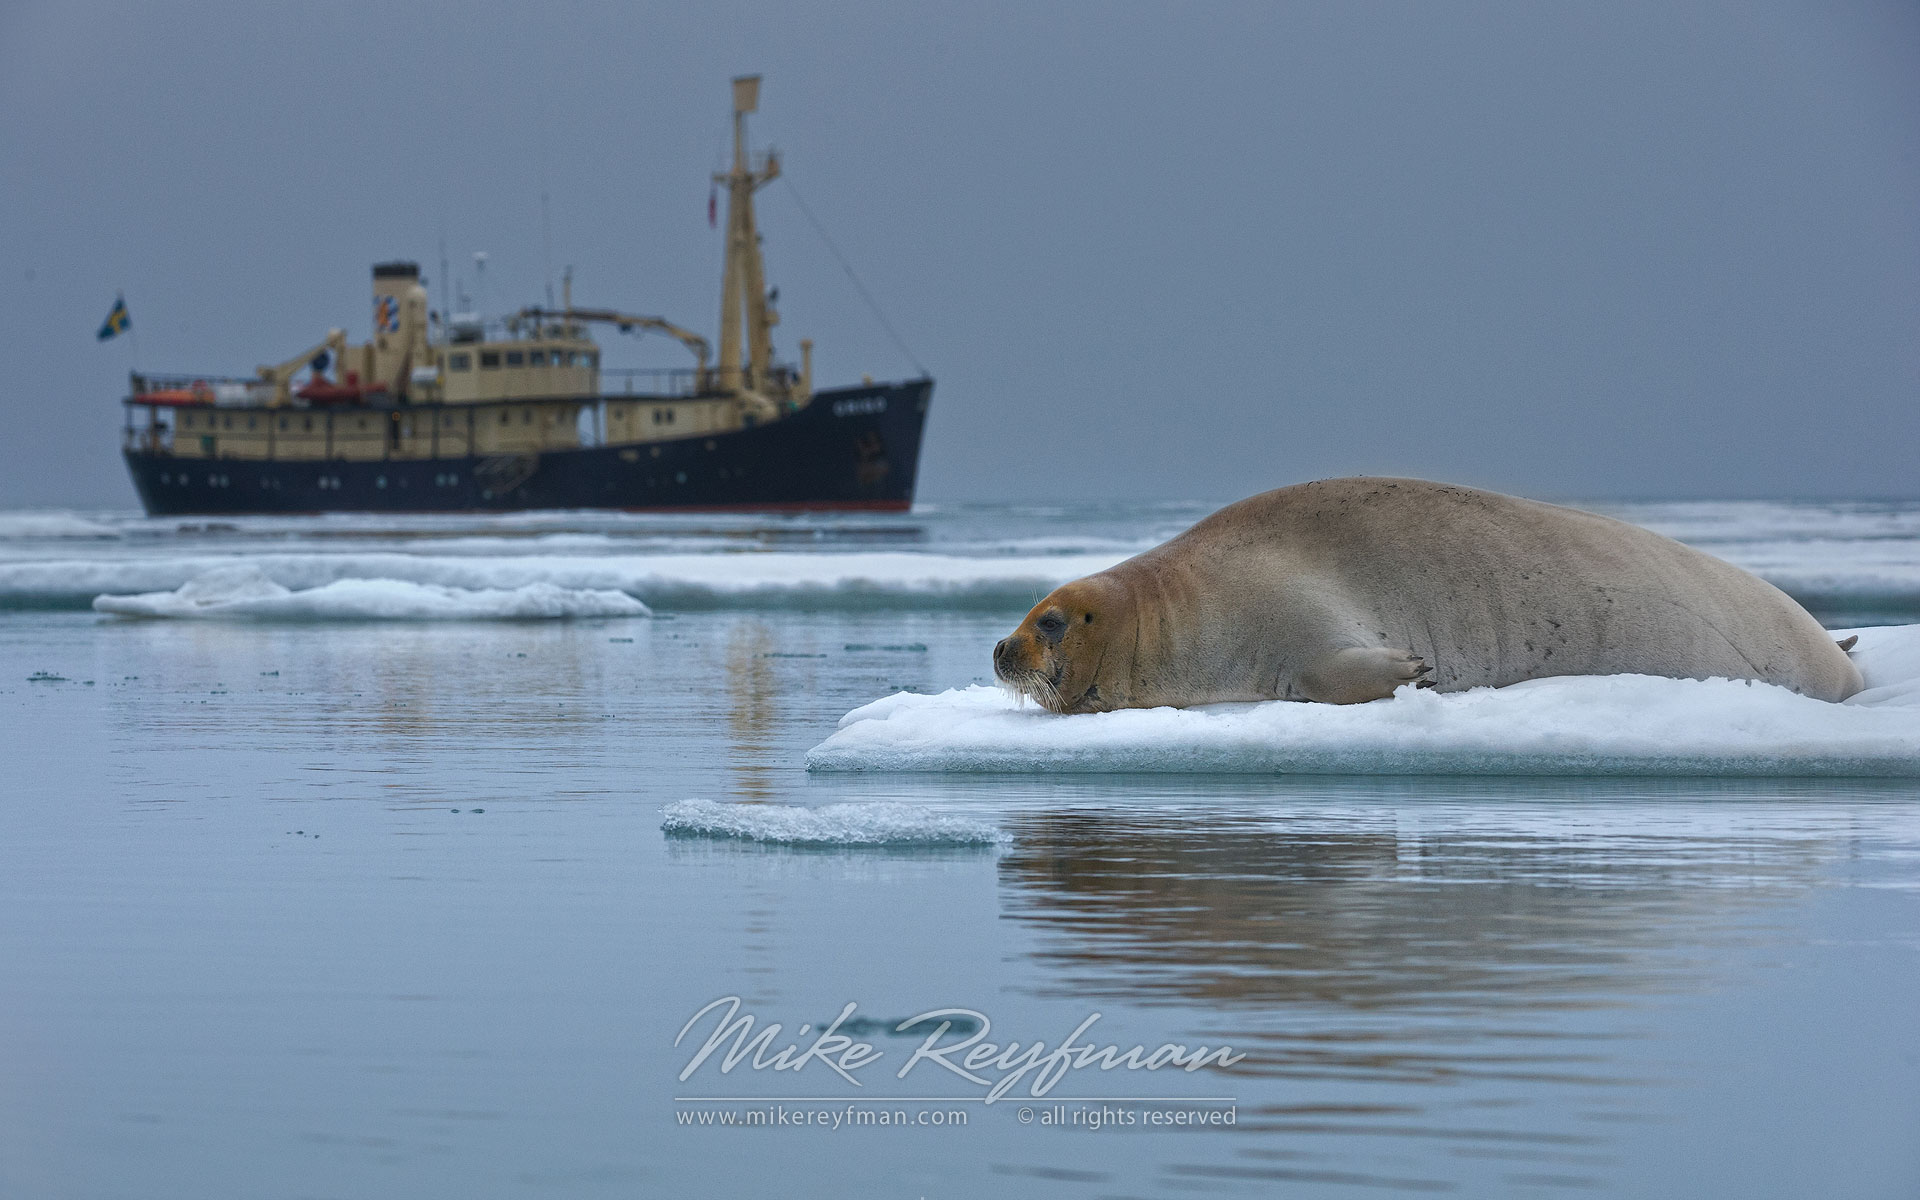 Bearded Seal (Erignathus barbatus) on the melting ice along Spitsbergen coast with M/S Origo on the background. Svalbard, Norway. - Wildlife-Svalbard-Spitsbergen-Norway - Mike Reyfman Photography